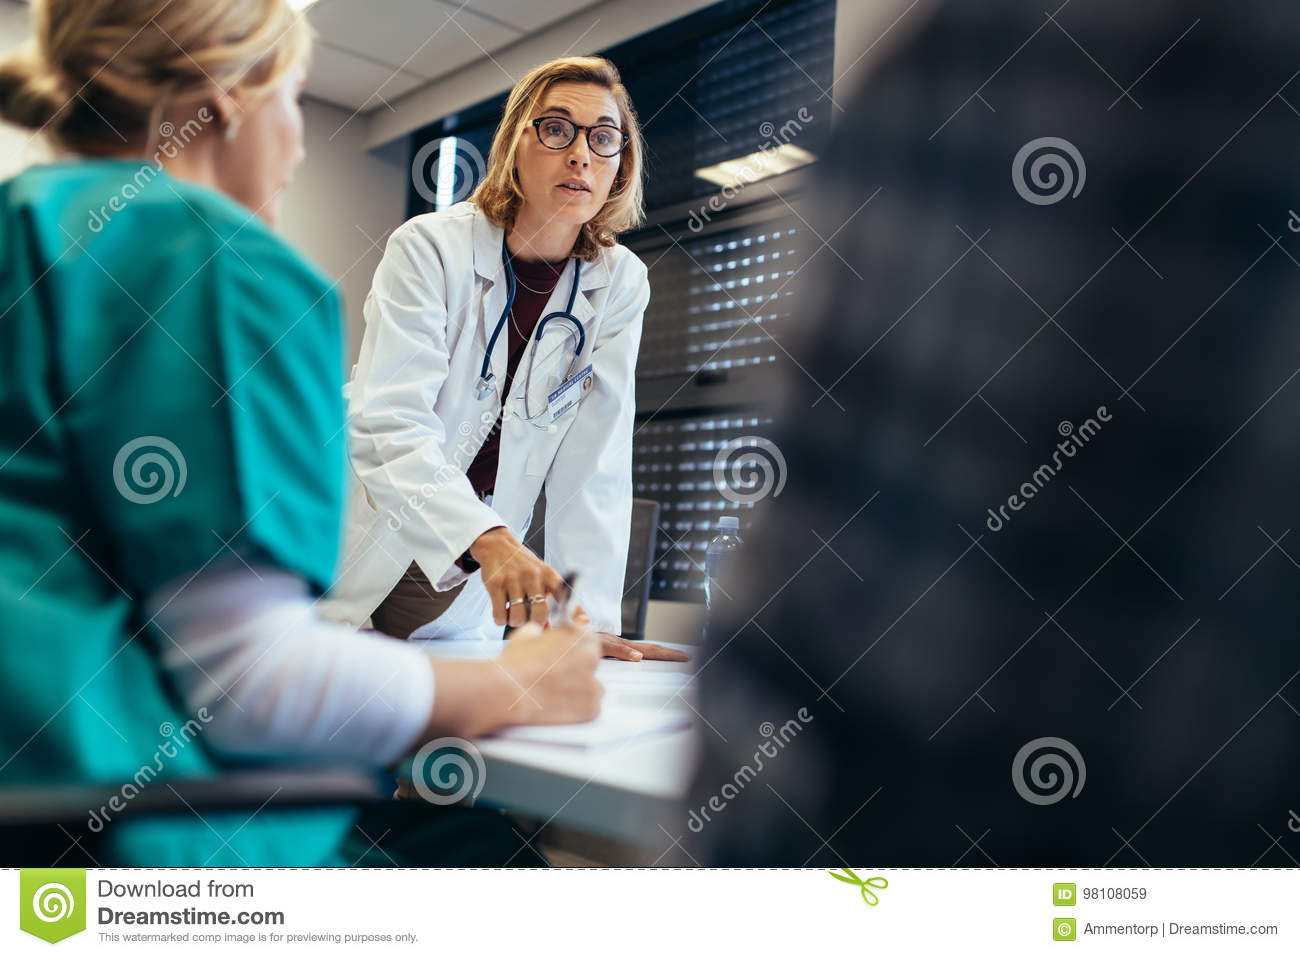 Female doctor briefing her team during meeting